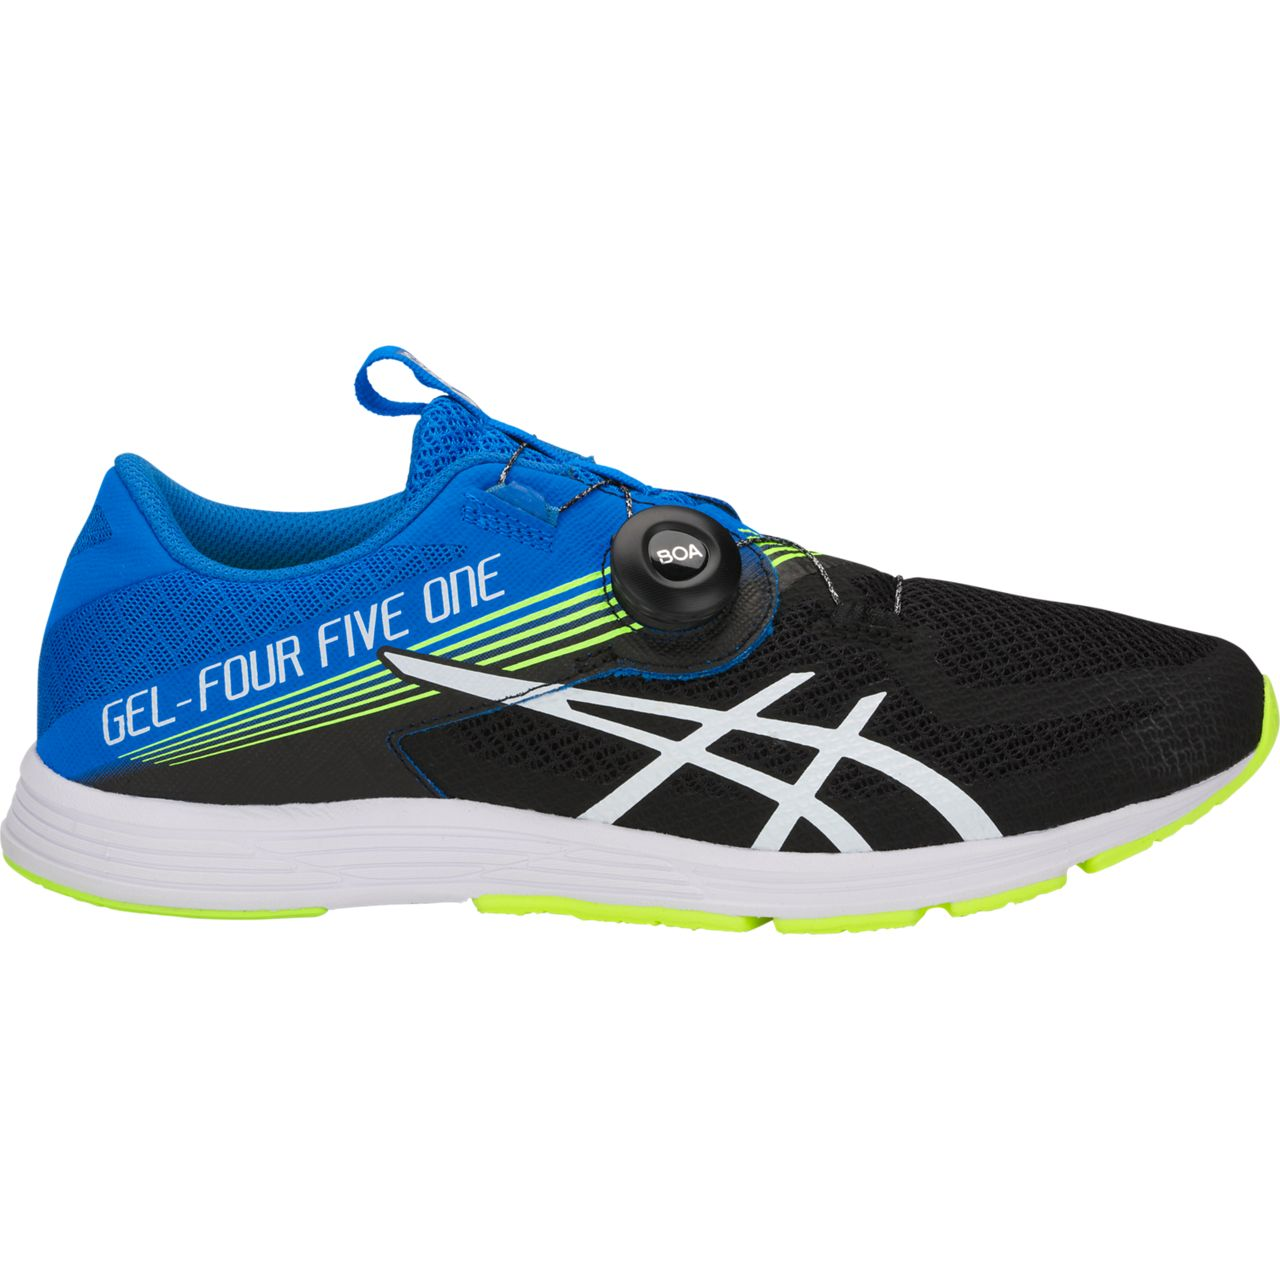 Wiggle | Asics Gel-451 Shoes | Running Shoes